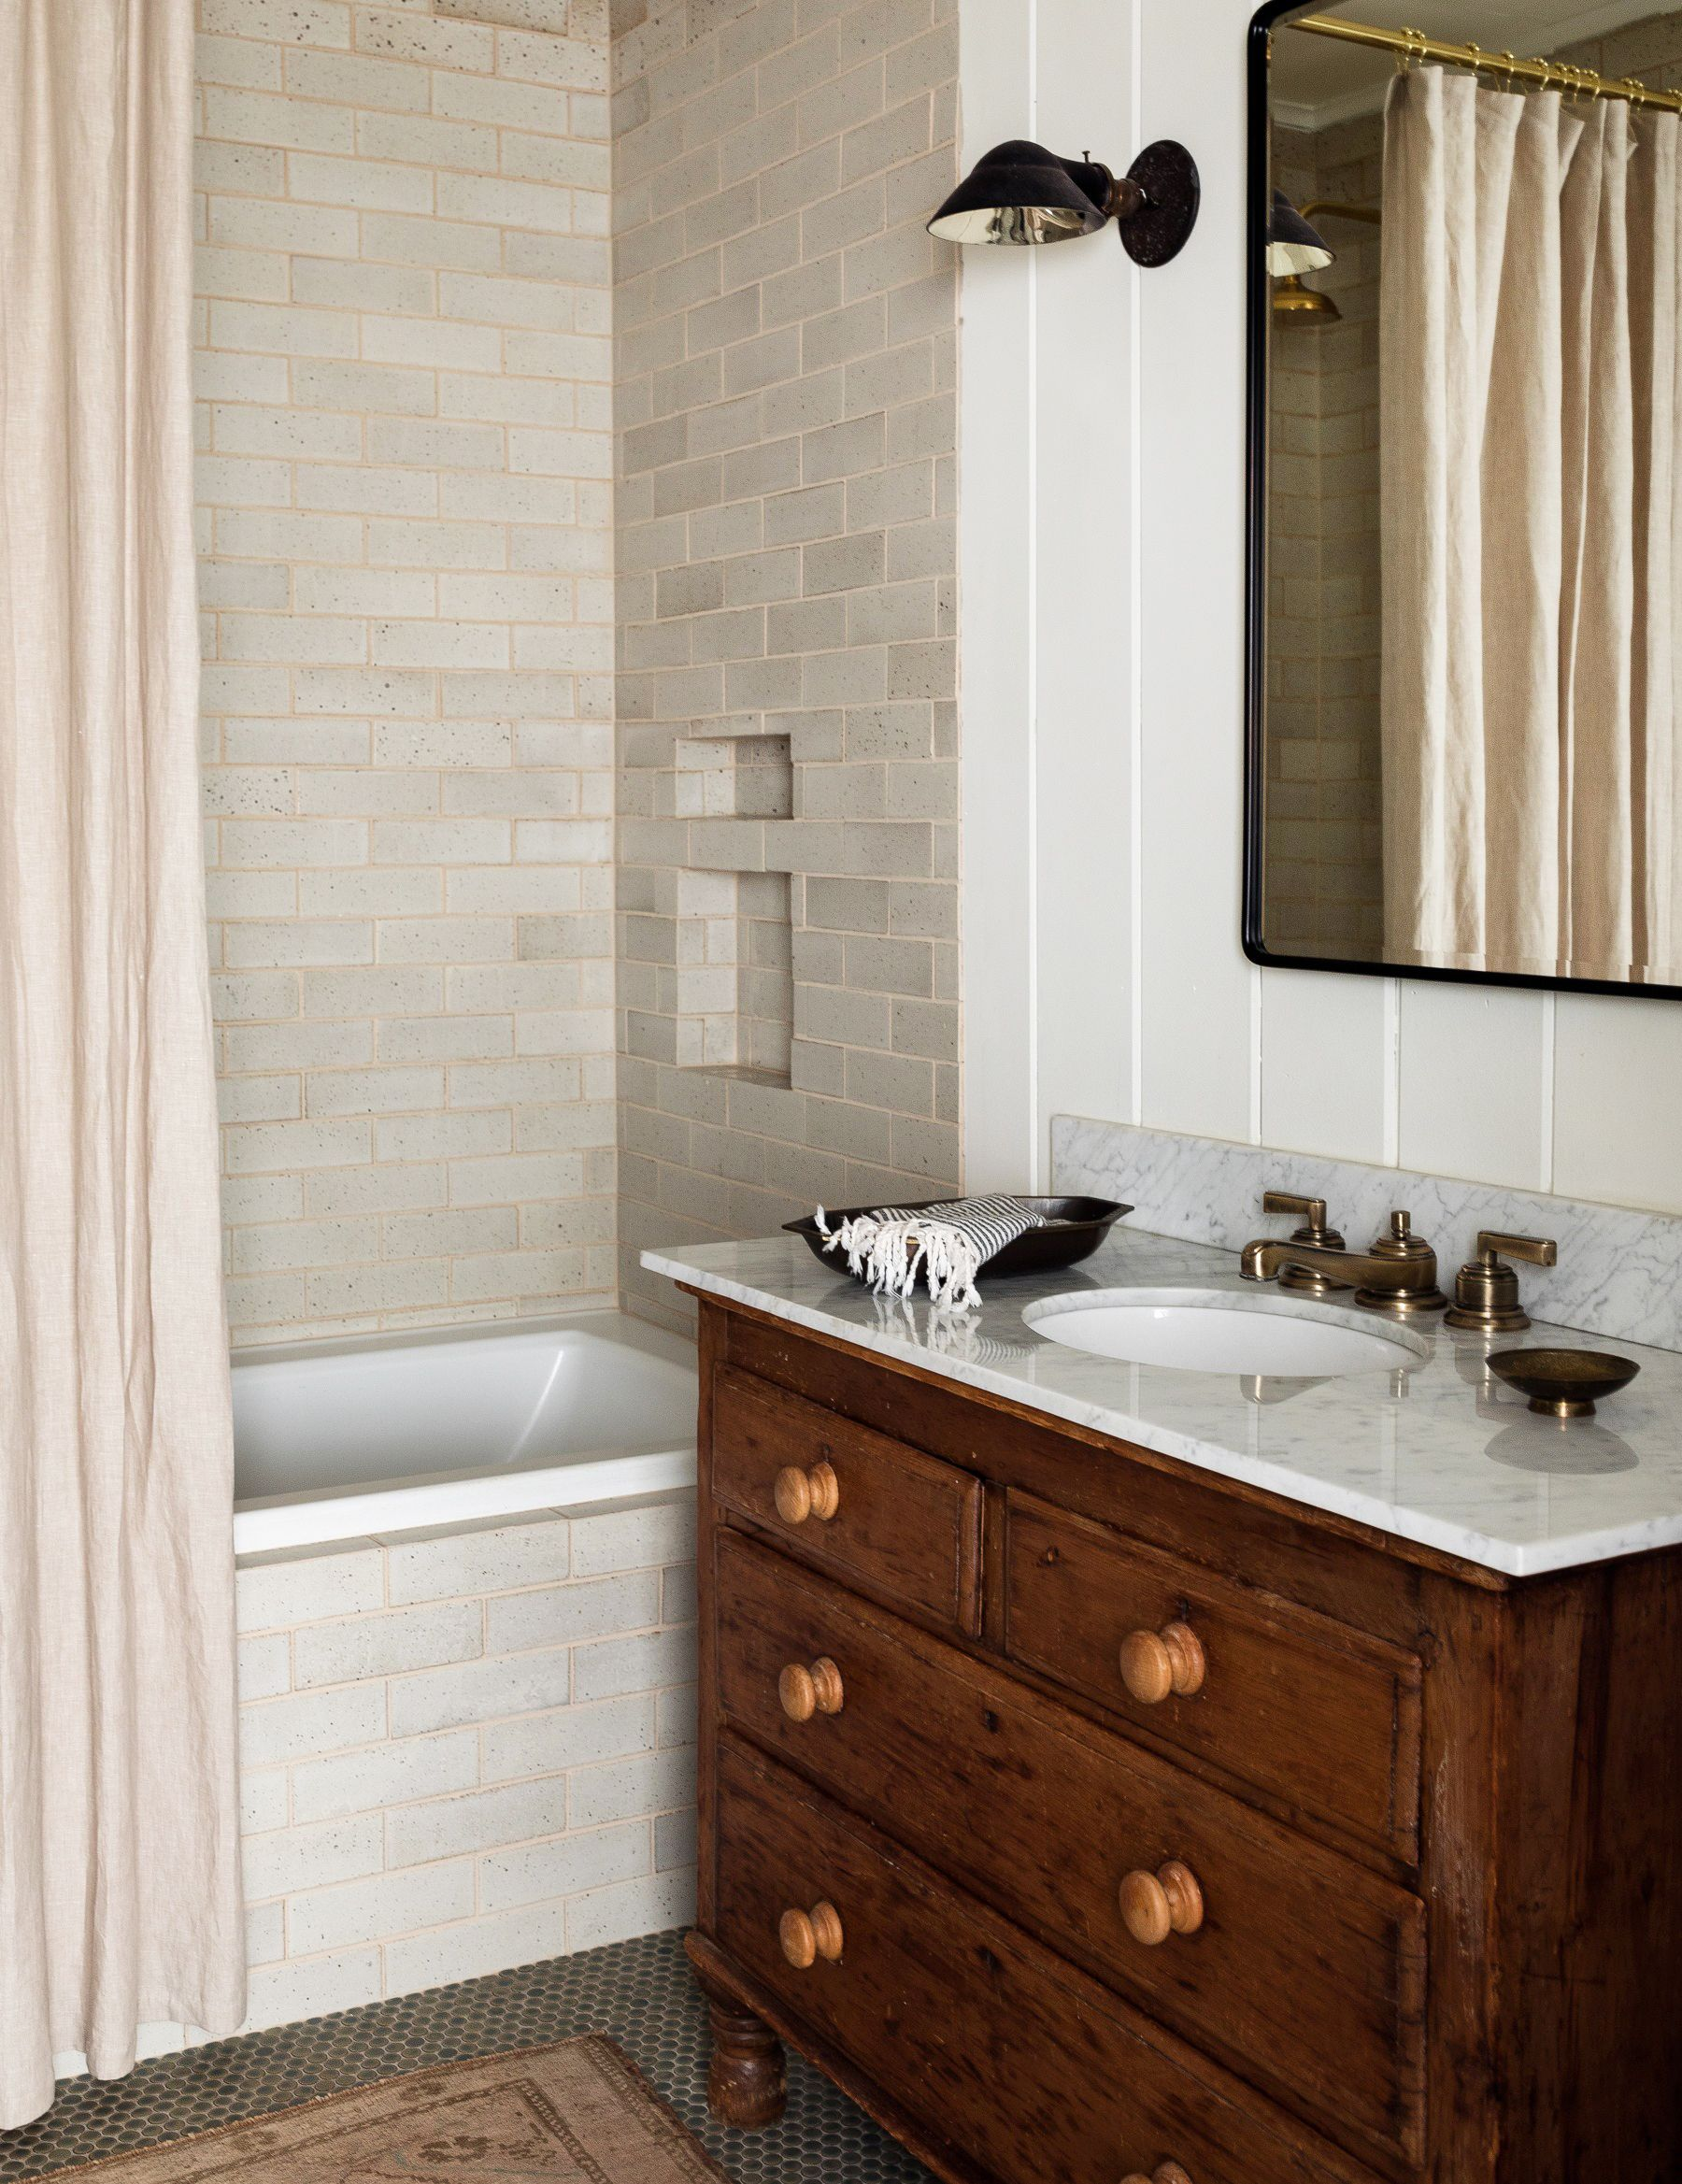 15 Best Subway Tile Bathroom Designs In